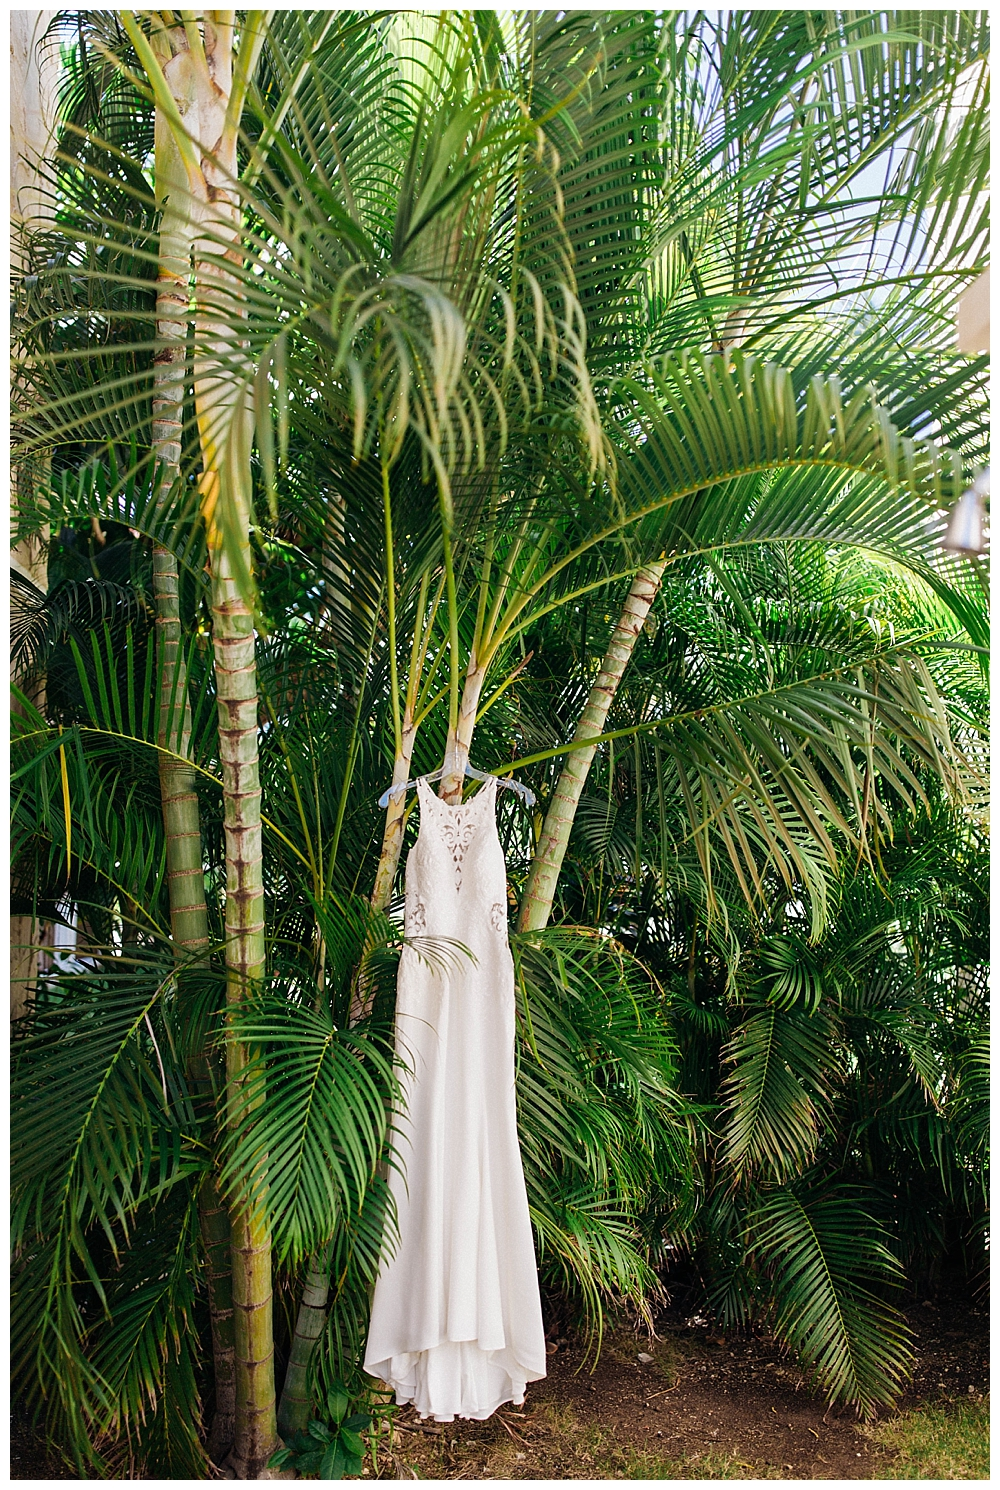 christinakarstphotography_dominicanrepublicwedding-46.jpg